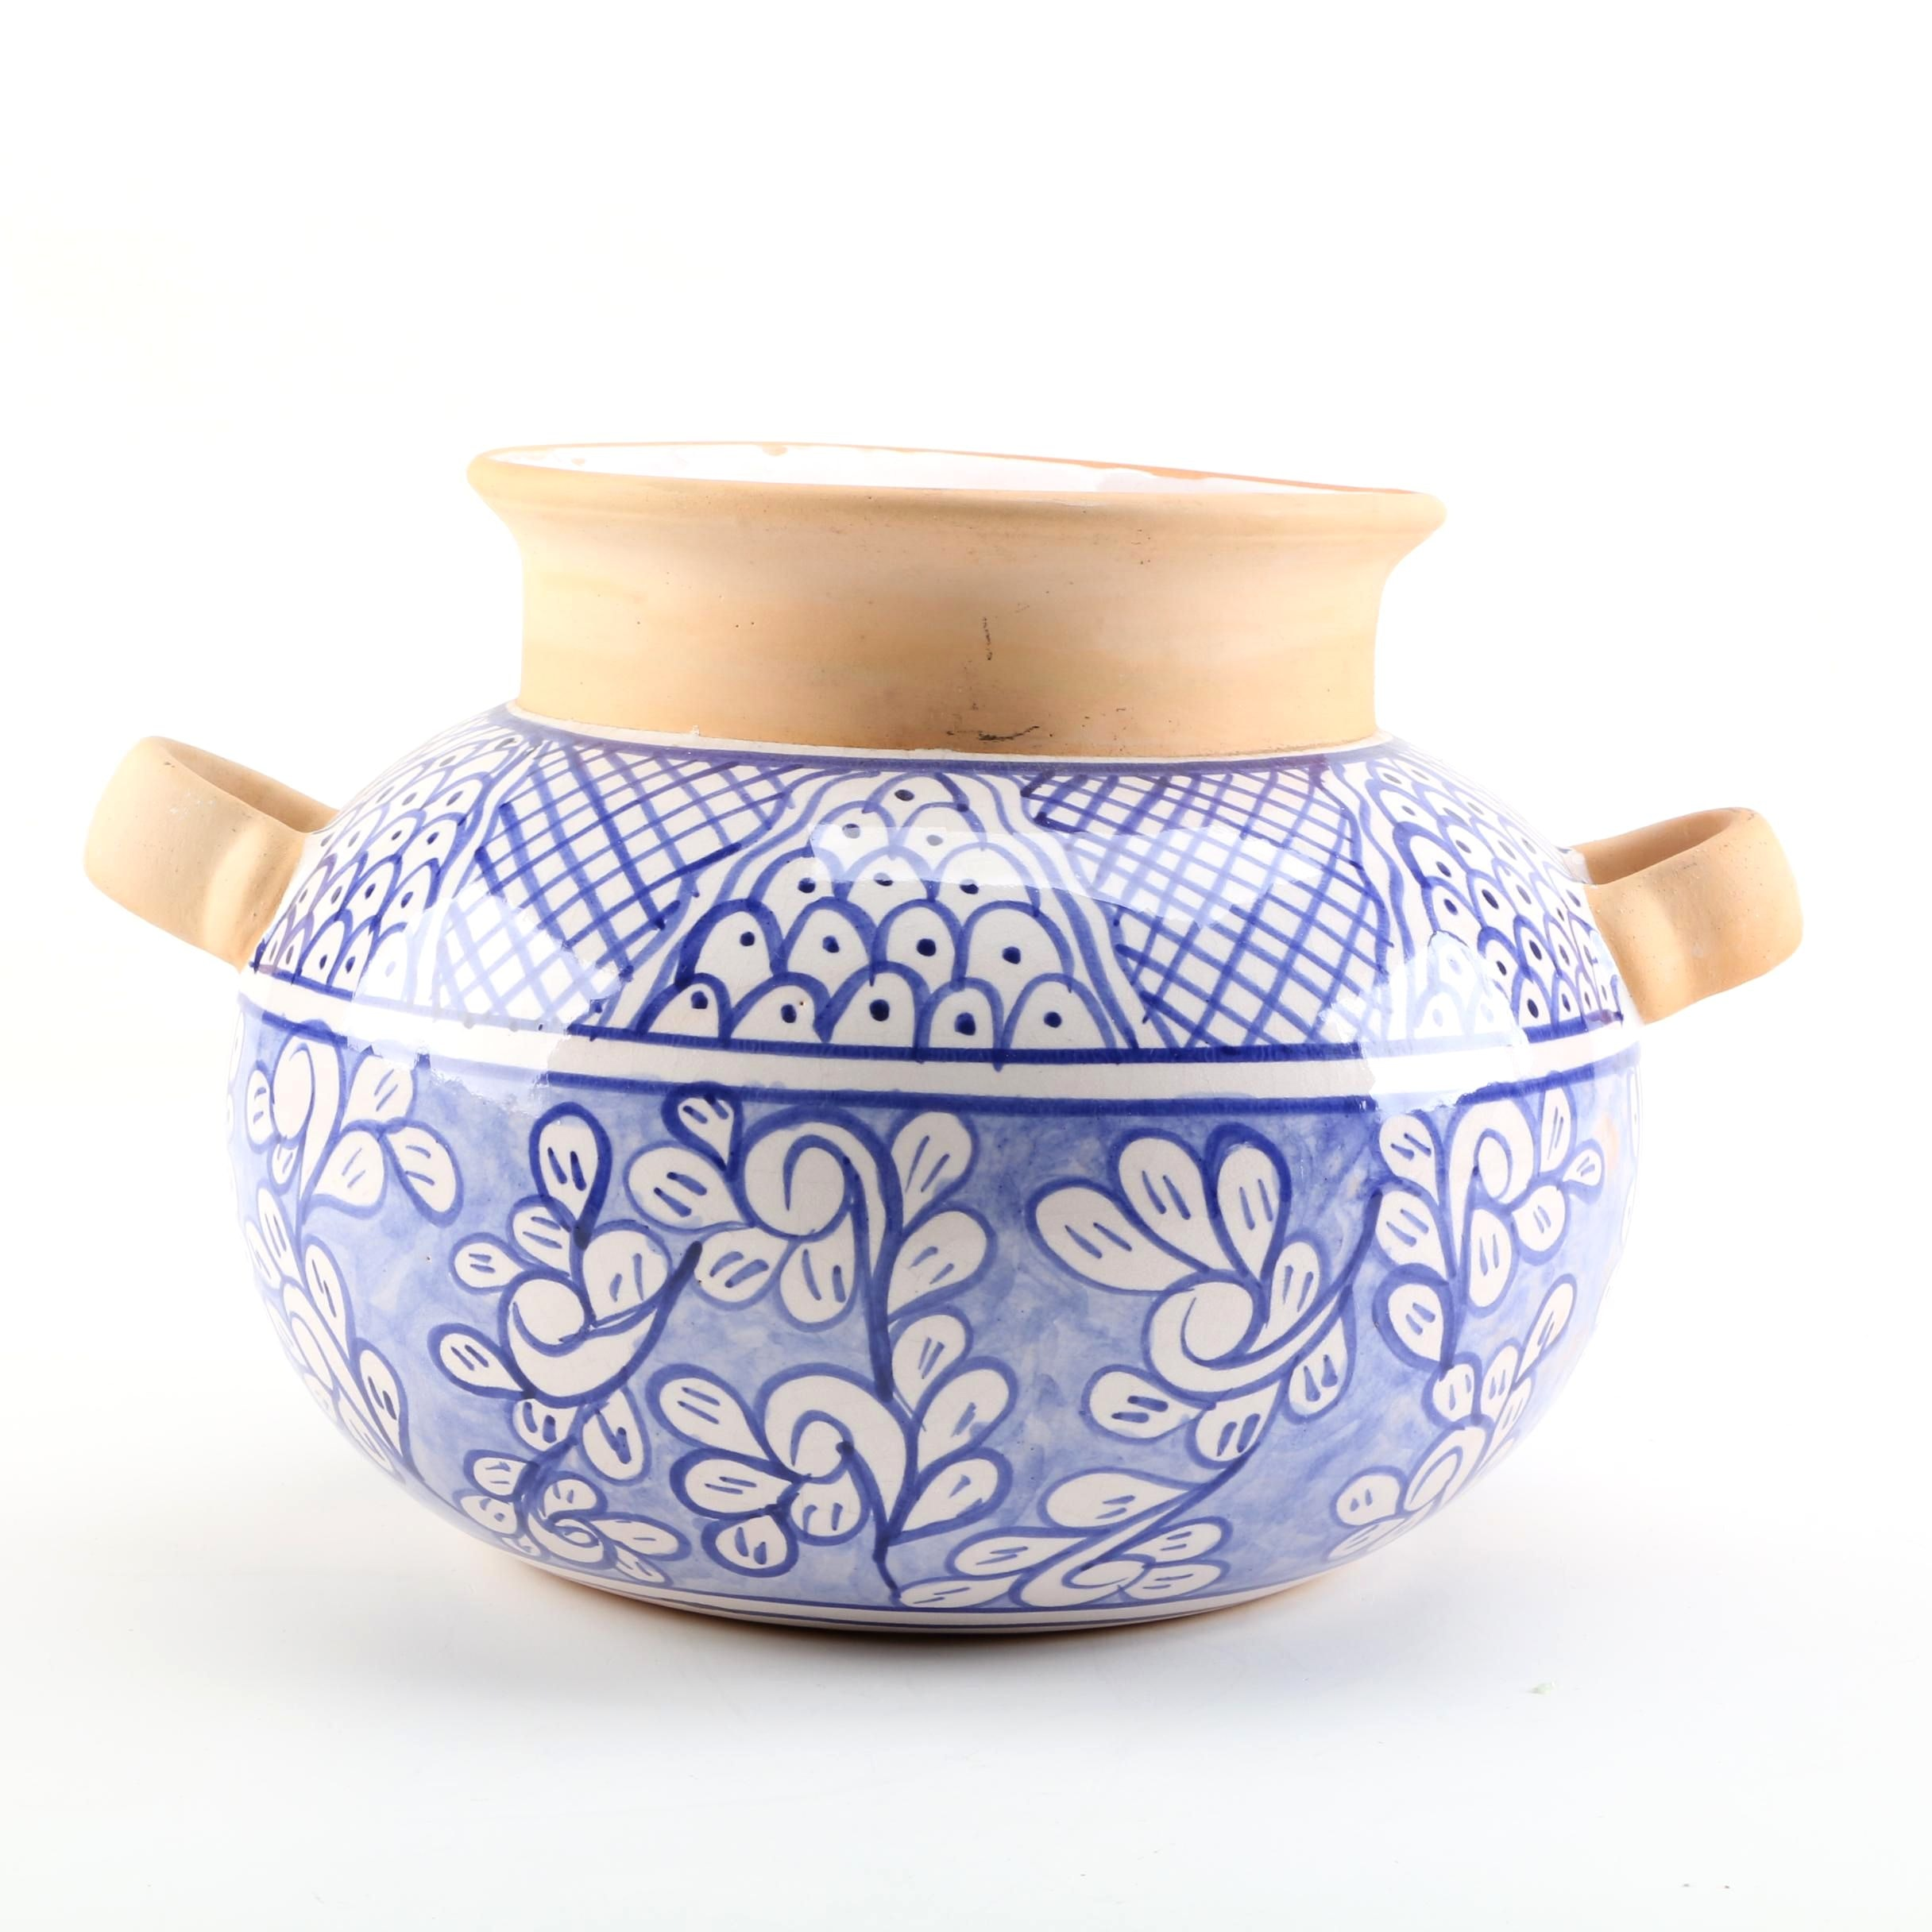 Chinese Hand-Painted Blue and White Porcelain Pot with Handles